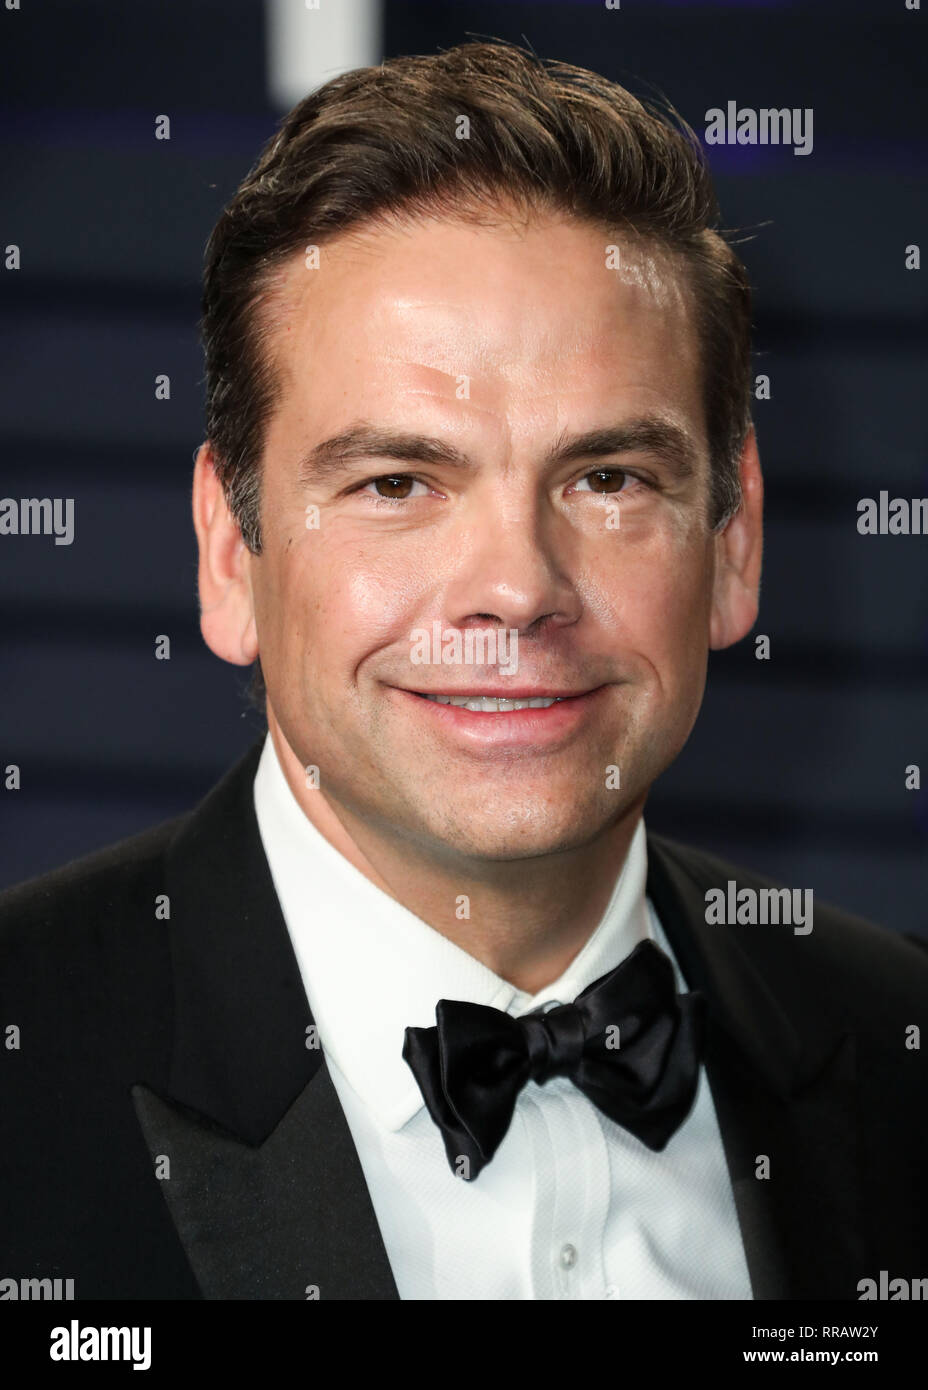 BEVERLY HILLS, LOS ANGELES, CA, USA - FEBRUARY 24: Lachlan Murdoch arrives at the 2019 Vanity Fair Oscar Party held at the Wallis Annenberg Center for the Performing Arts on February 24, 2019 in Beverly Hills, Los Angeles, California, United States. (Photo by Xavier Collin/Image Press Agency) - Stock Image